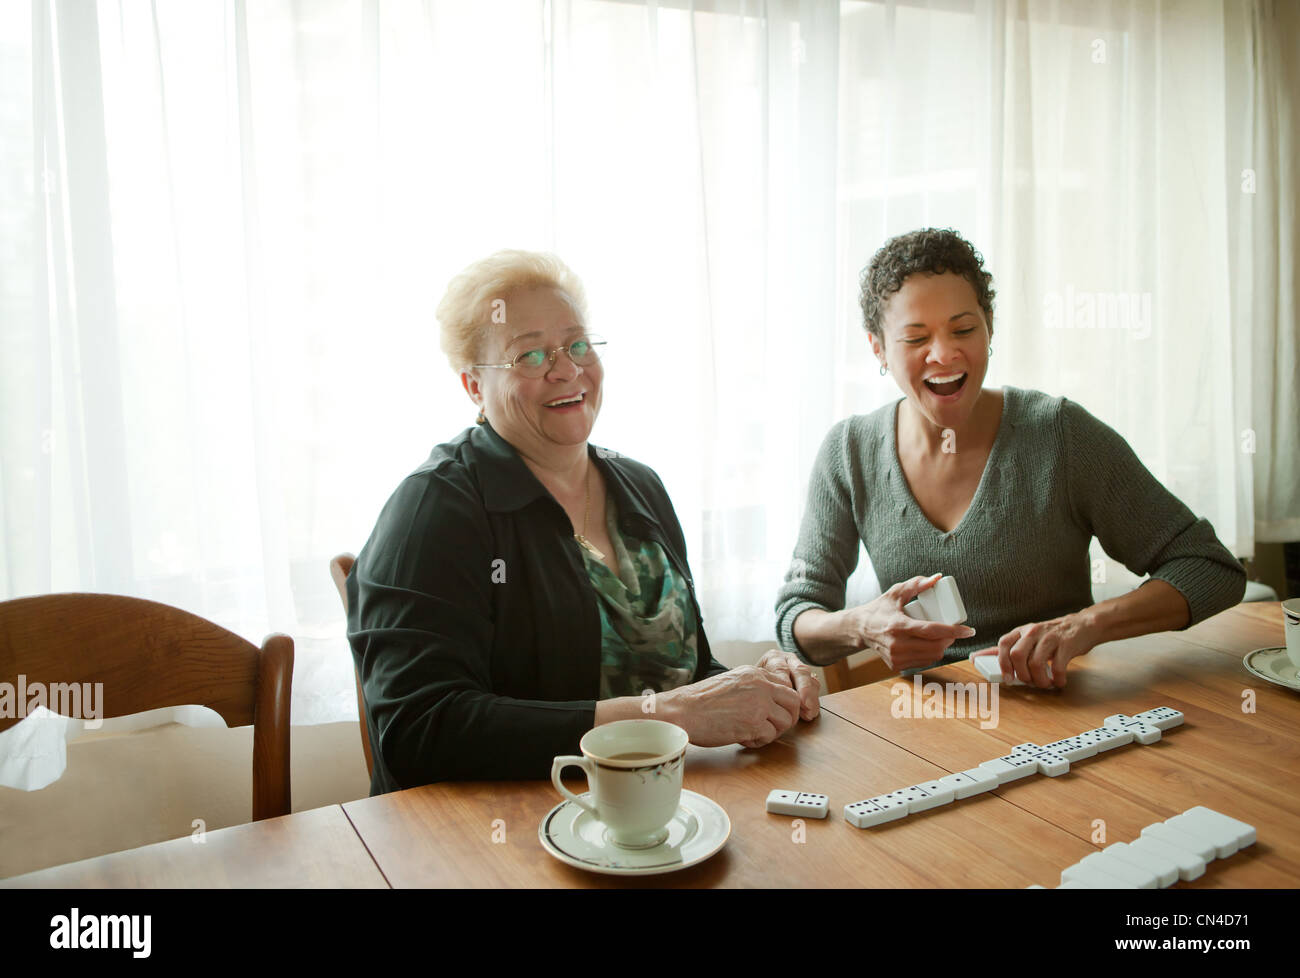 Mother and adult daughter playing dominoes - Stock Image